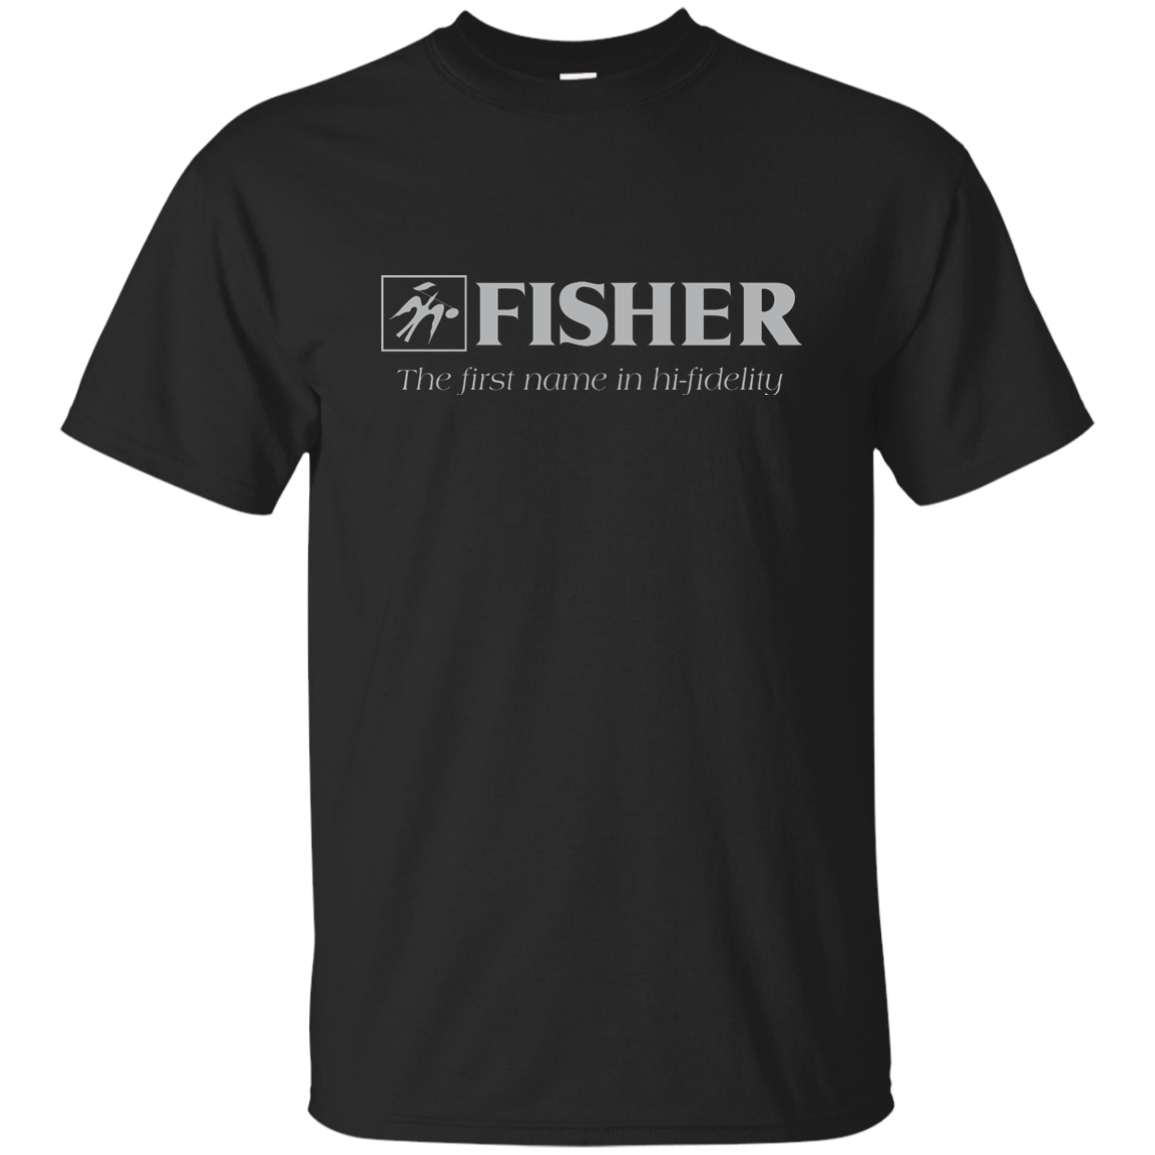 Fisher Electronics, Audio, Stereo, Components, Hi-Fi, Amplifier, Tuner, T-Shirt